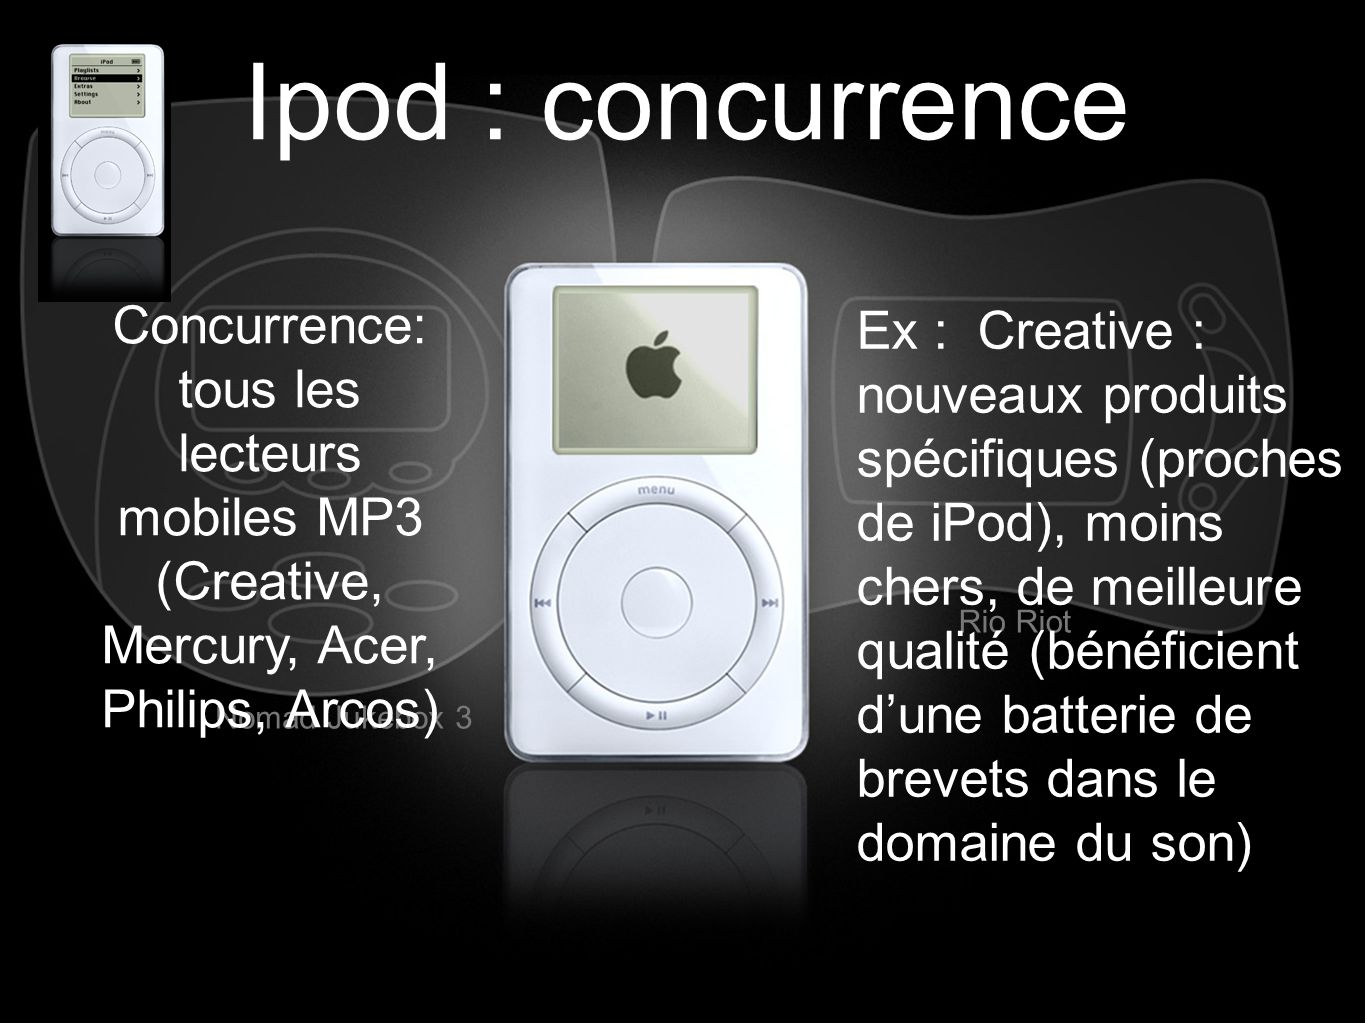 Ipod : concurrence Concurrence: tous les lecteurs mobiles MP3 (Creative, Mercury, Acer, Philips, Arcos)